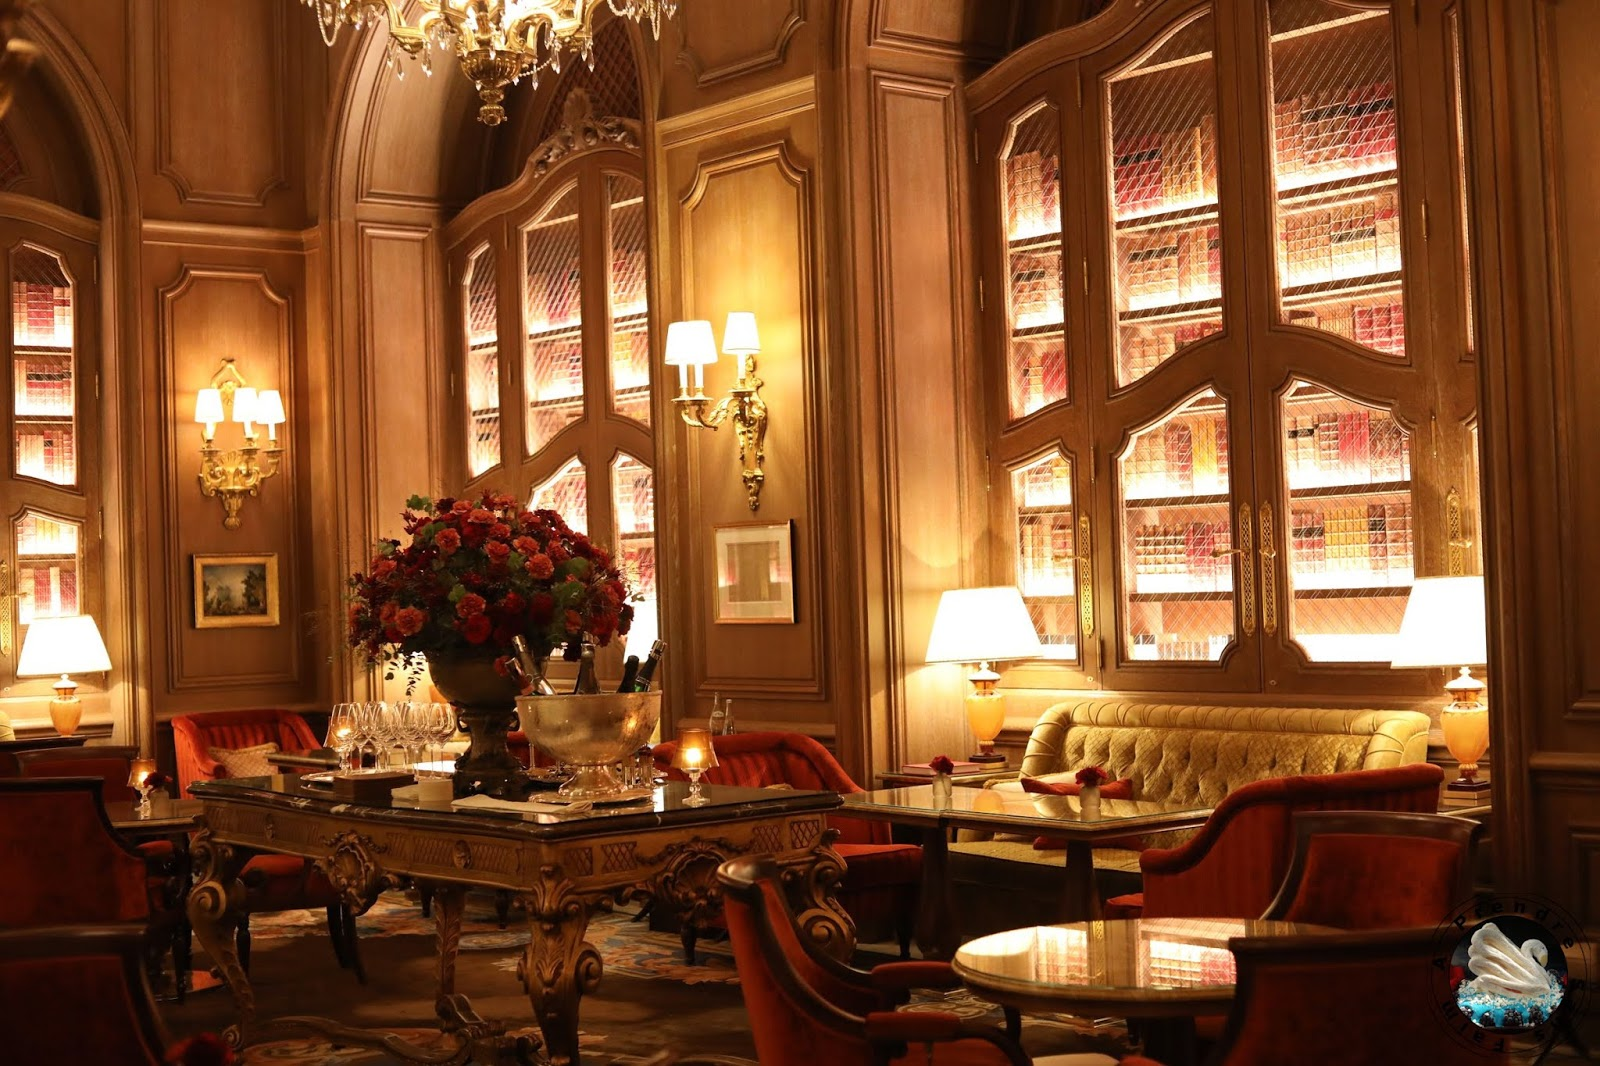 Excellence Made in Spain à l'Hôtel Ritz Paris